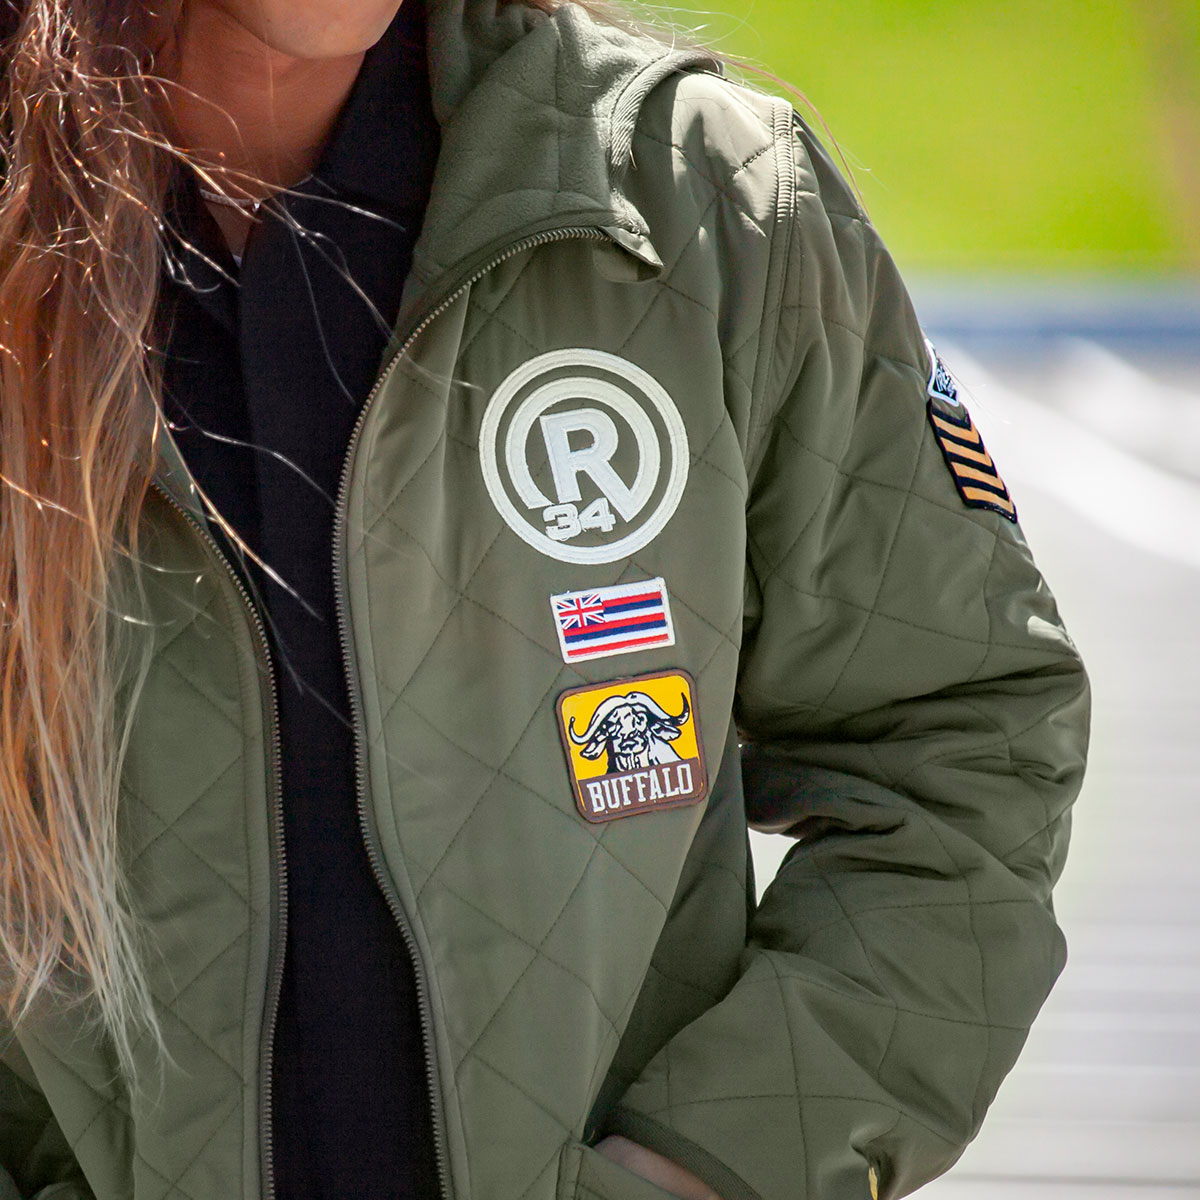 RBV ARMY EMBLEM QUILTING JACKET